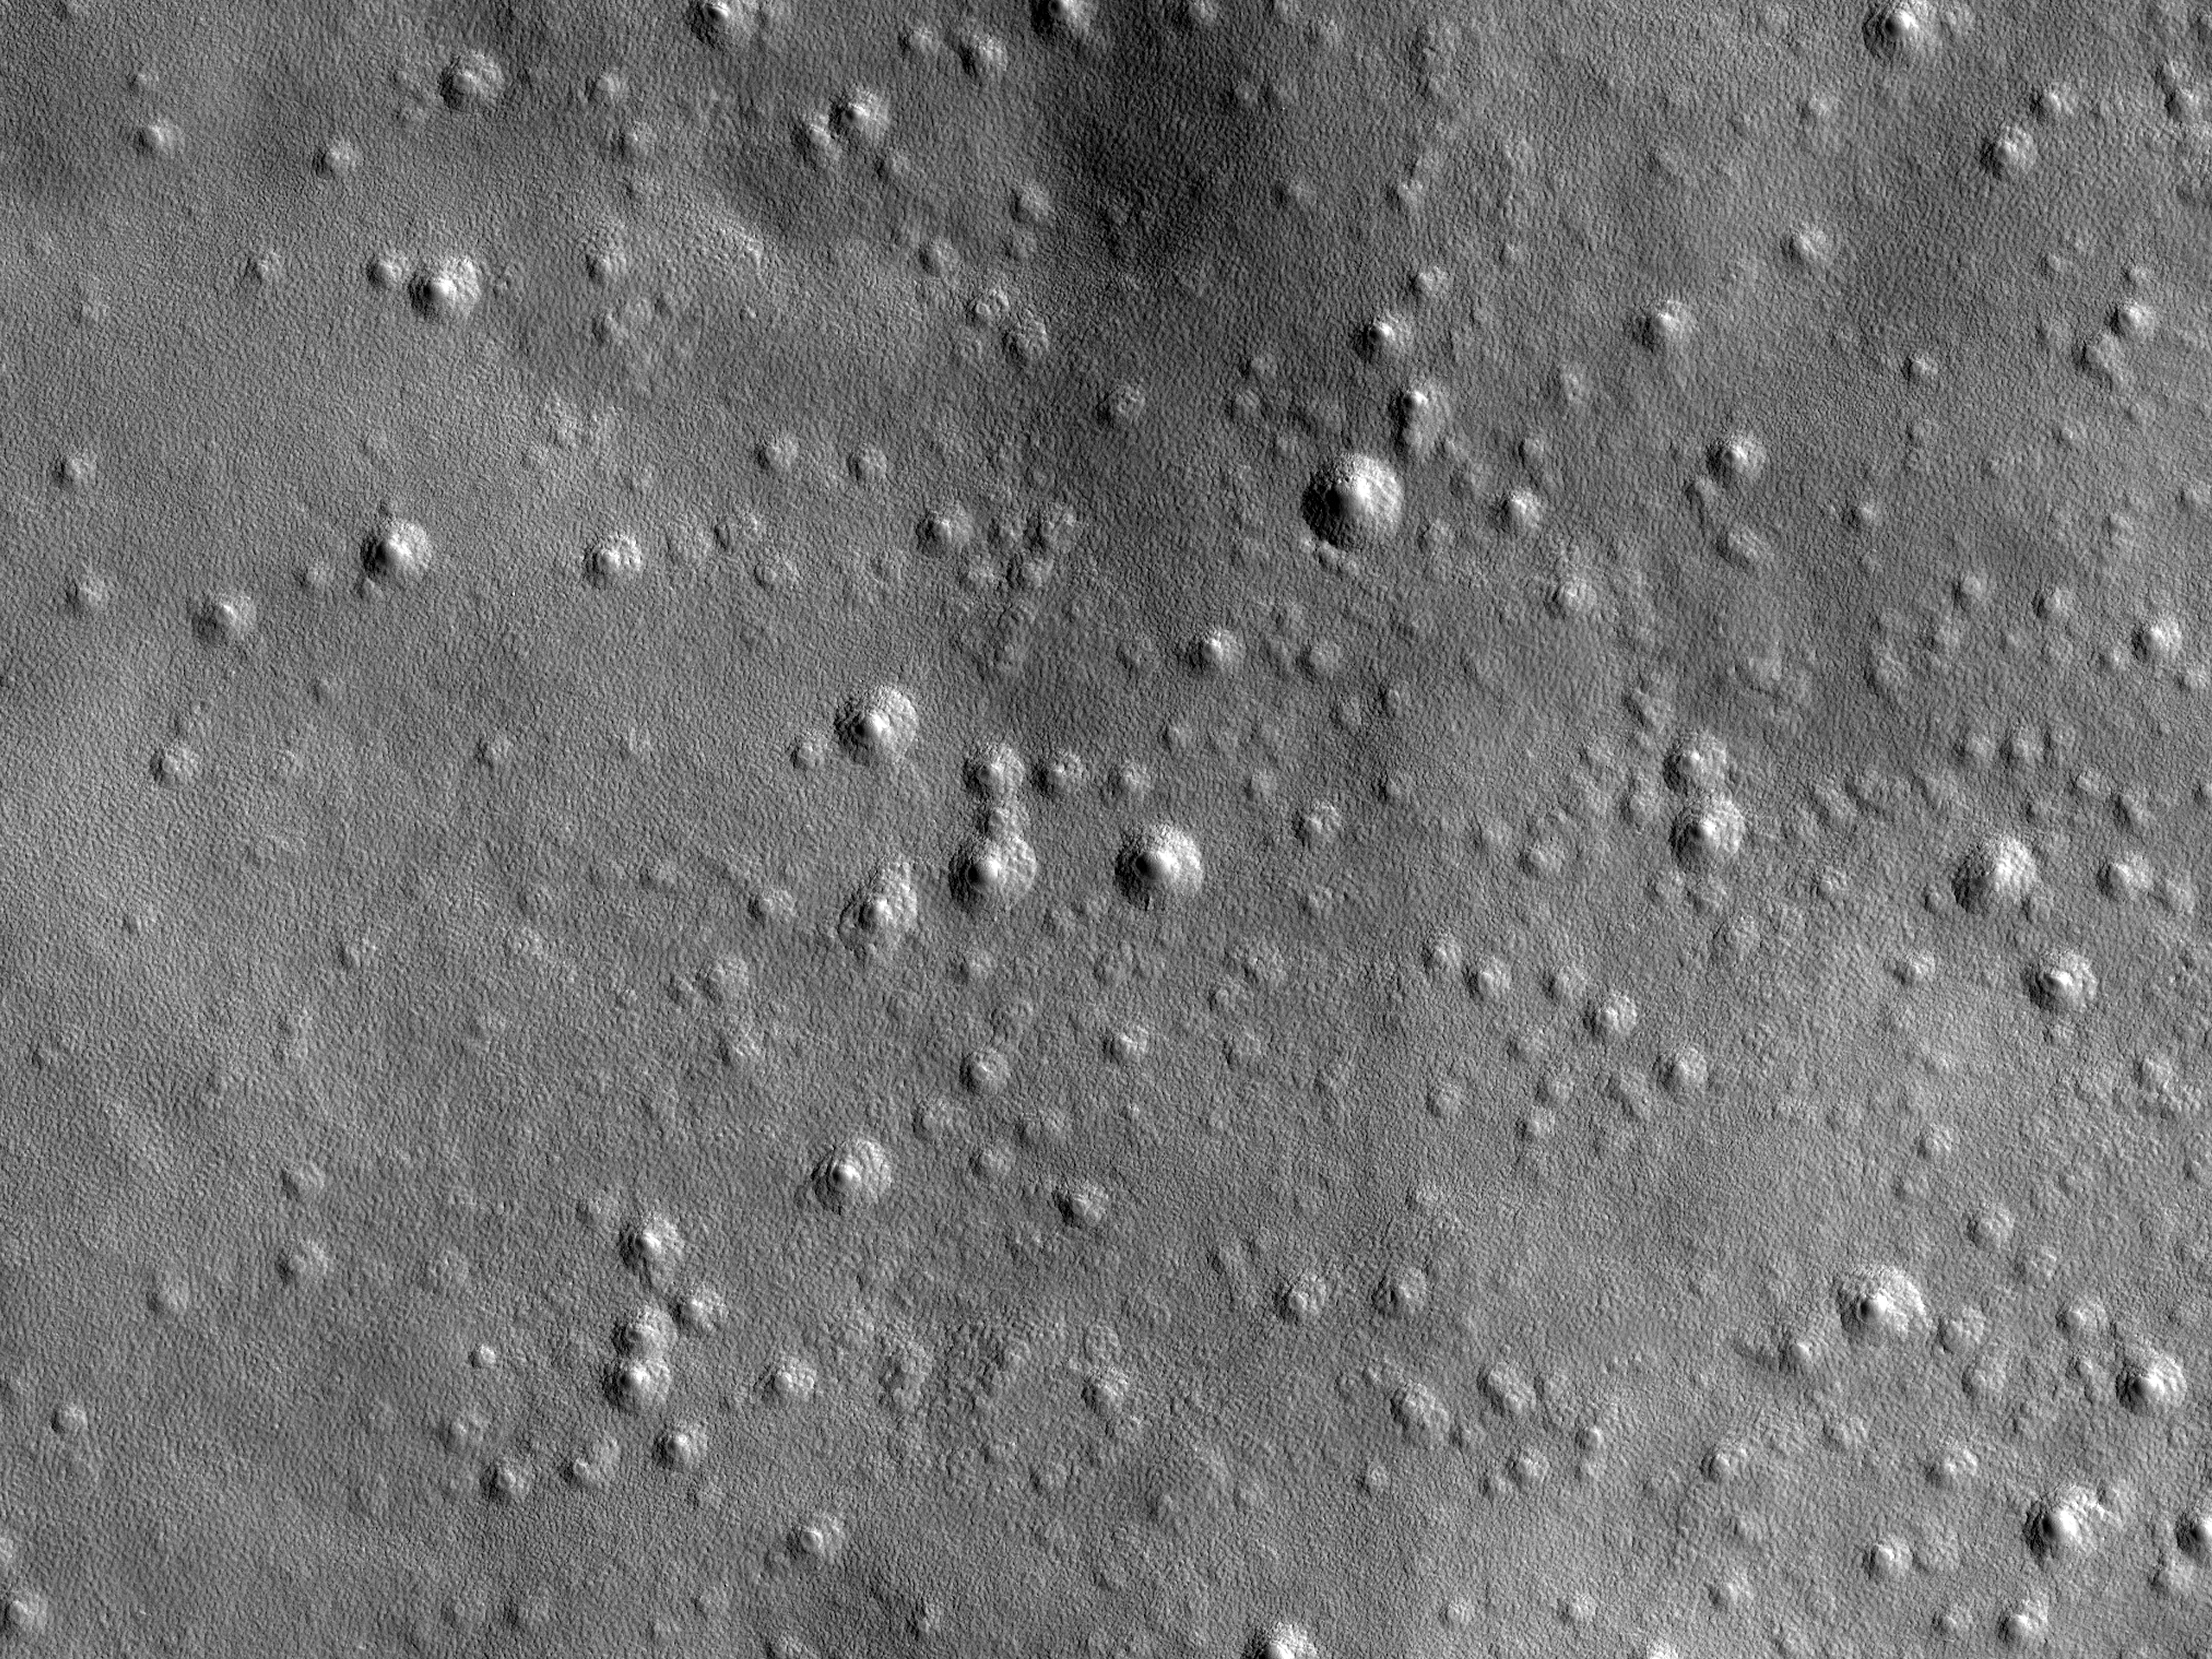 Expanded Craters